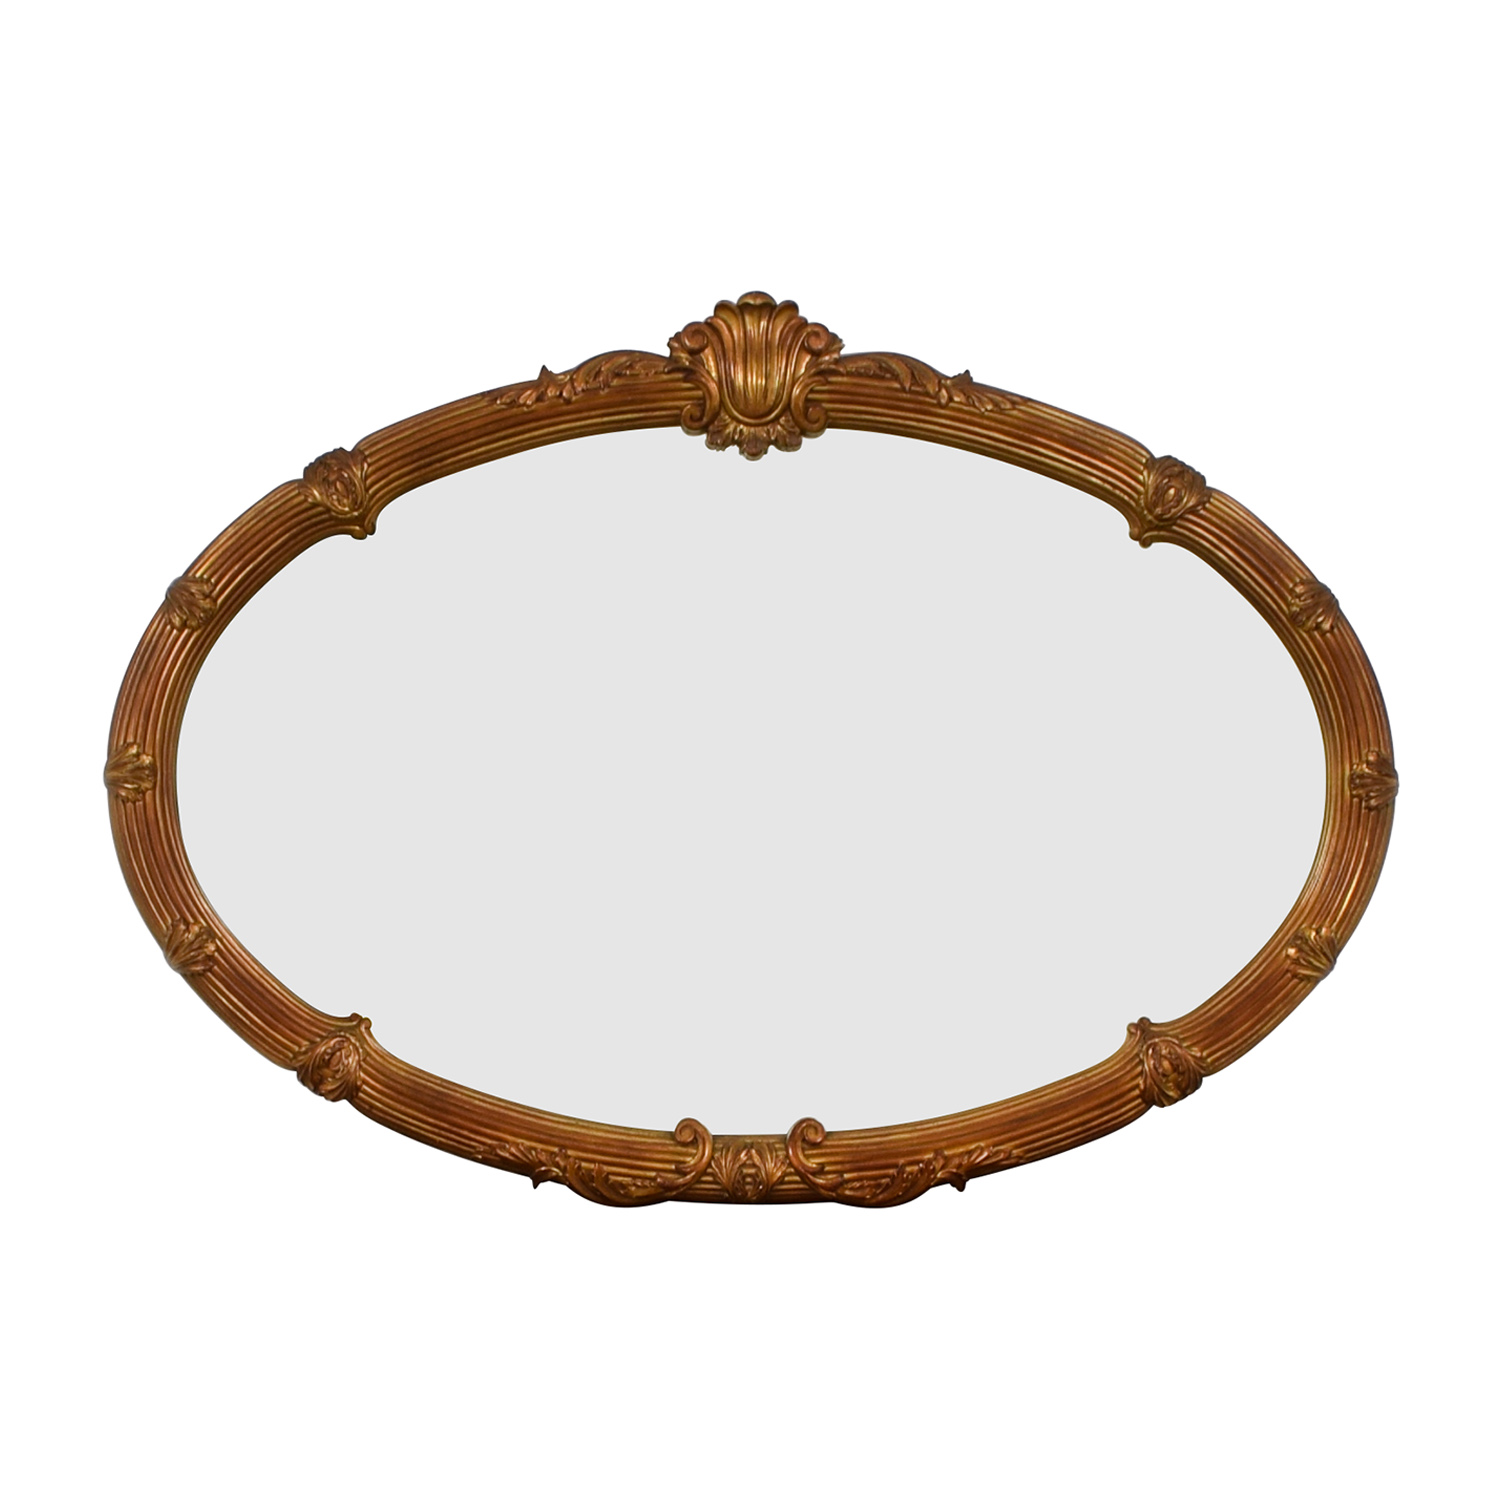 Gold Framed Wall Mirror / Mirrors